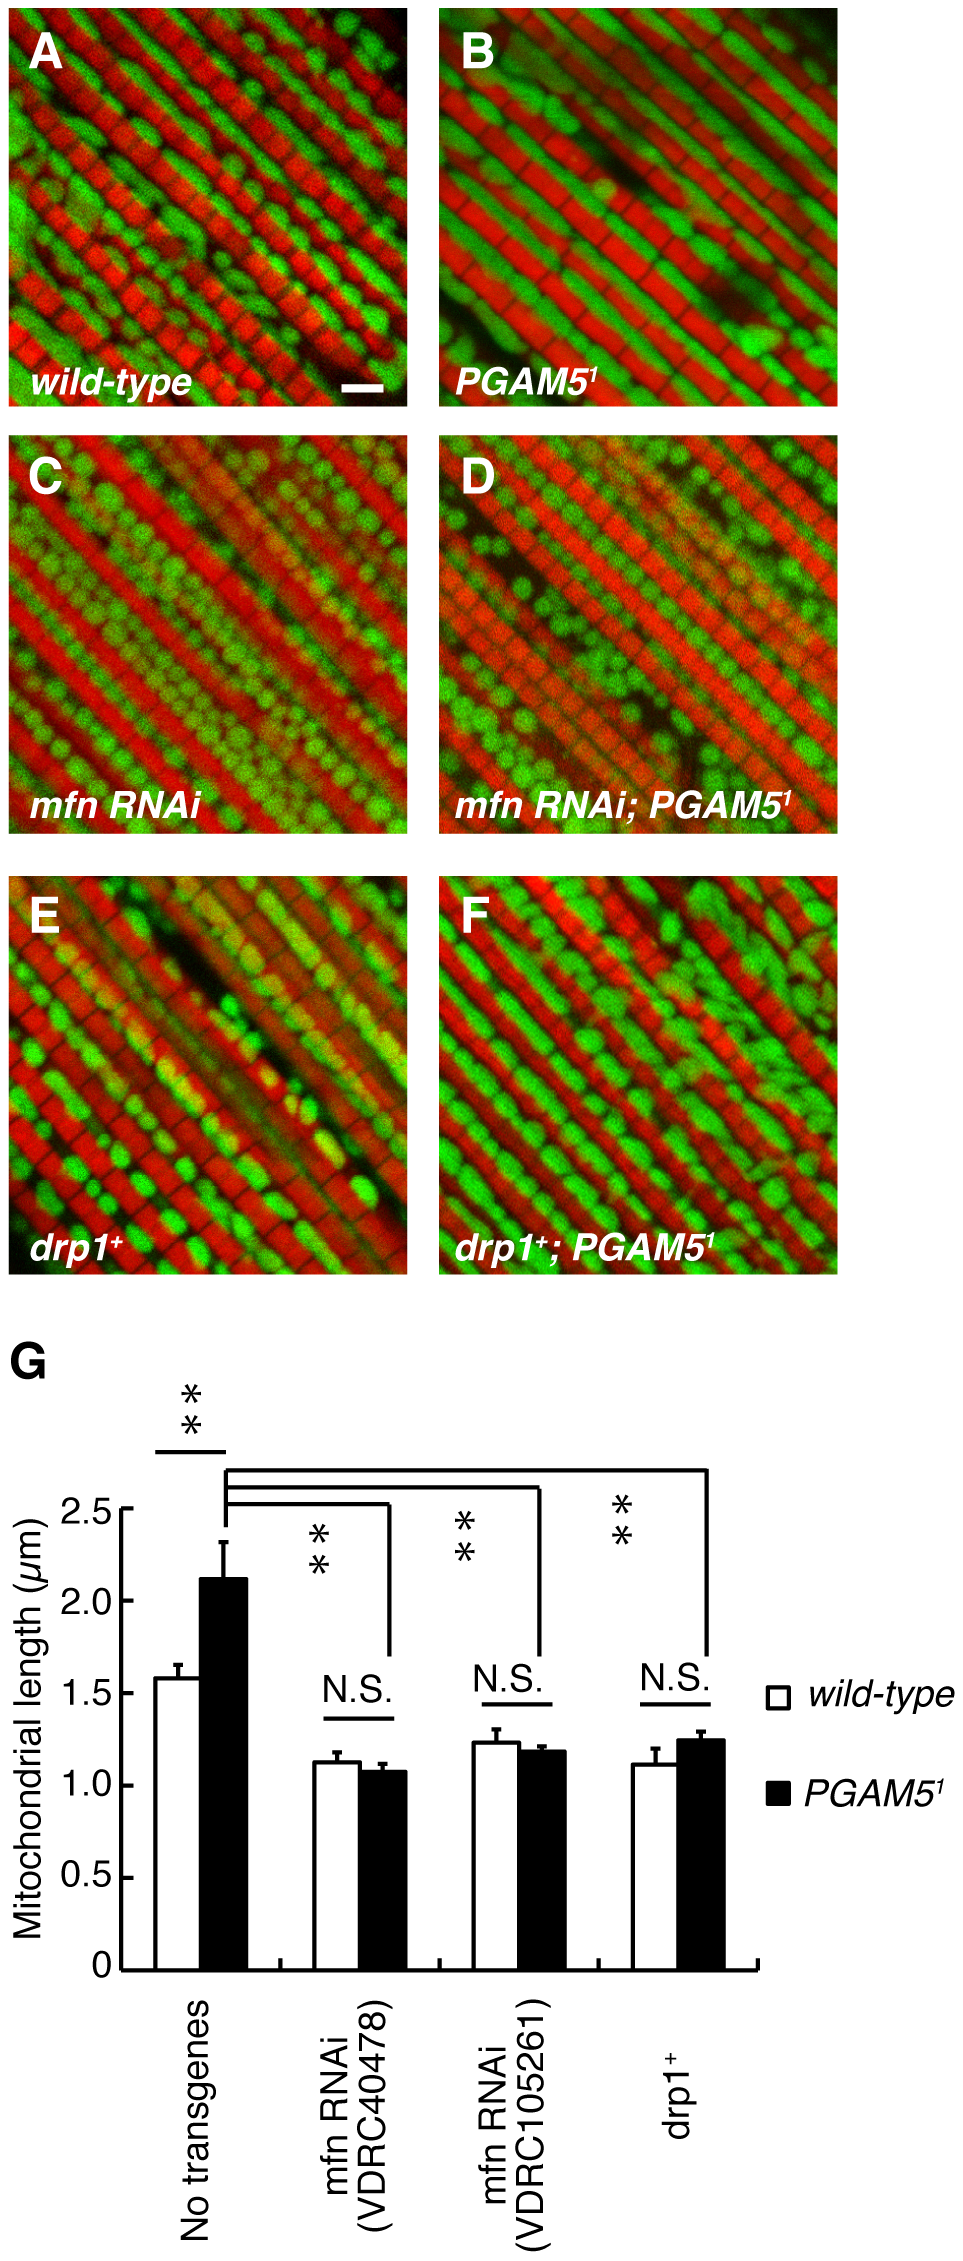 Relationship between <i>dPGAM5</i> and the mitochondrial fusion/fission genes.